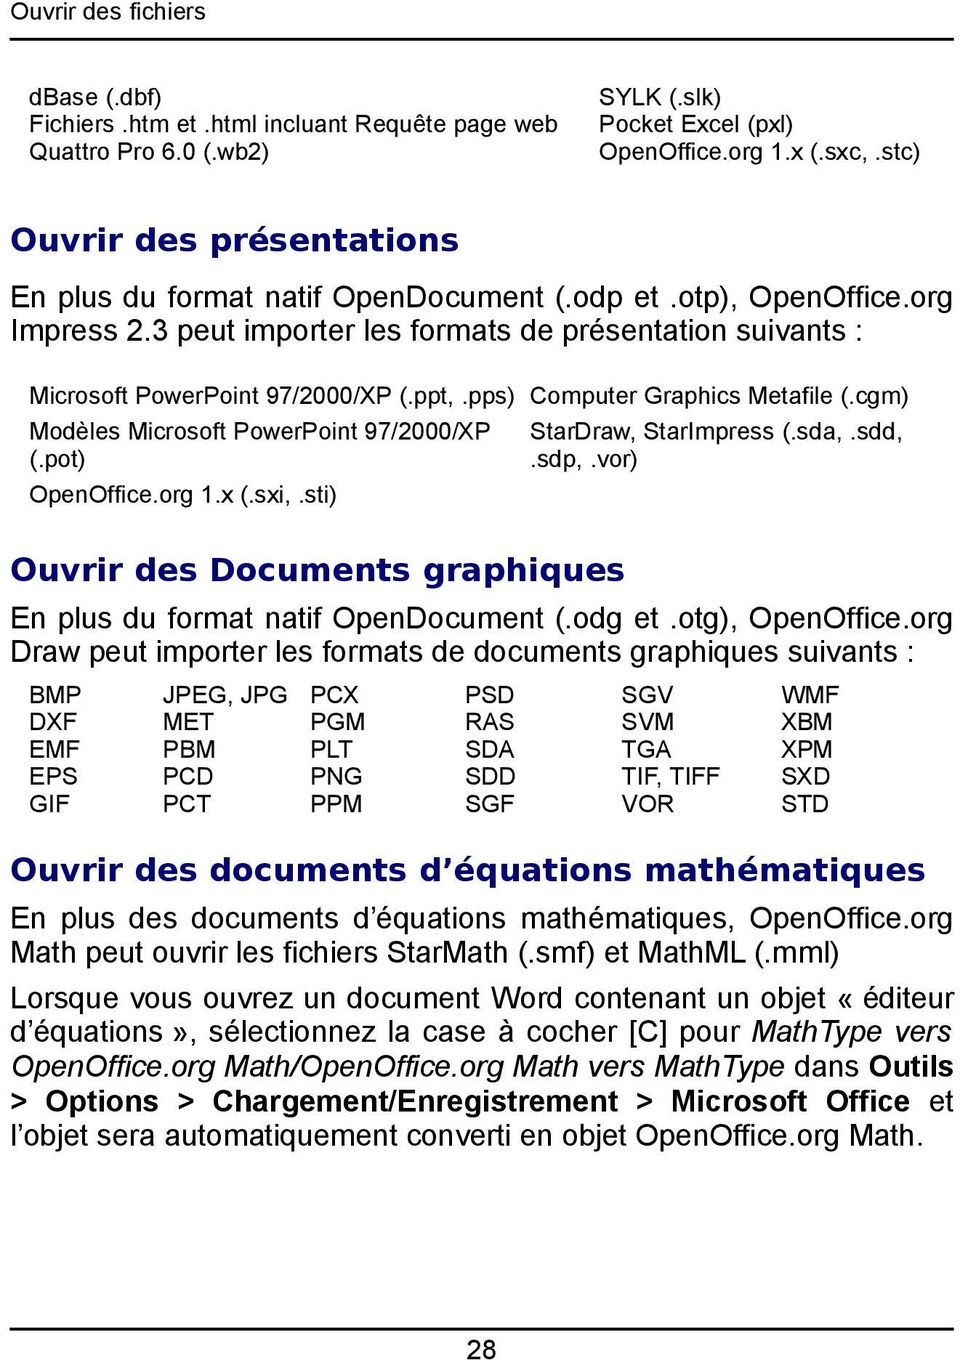 ppt,.pps) Computer Graphics Metafile (.cgm) Modèles Microsoft PowerPoint 97/2000/XP (.pot) OpenOffice.org 1.x (.sxi,.sti) Ouvrir des Documents graphiques StarDraw, StarImpress (.sda,.sdd,.sdp,.